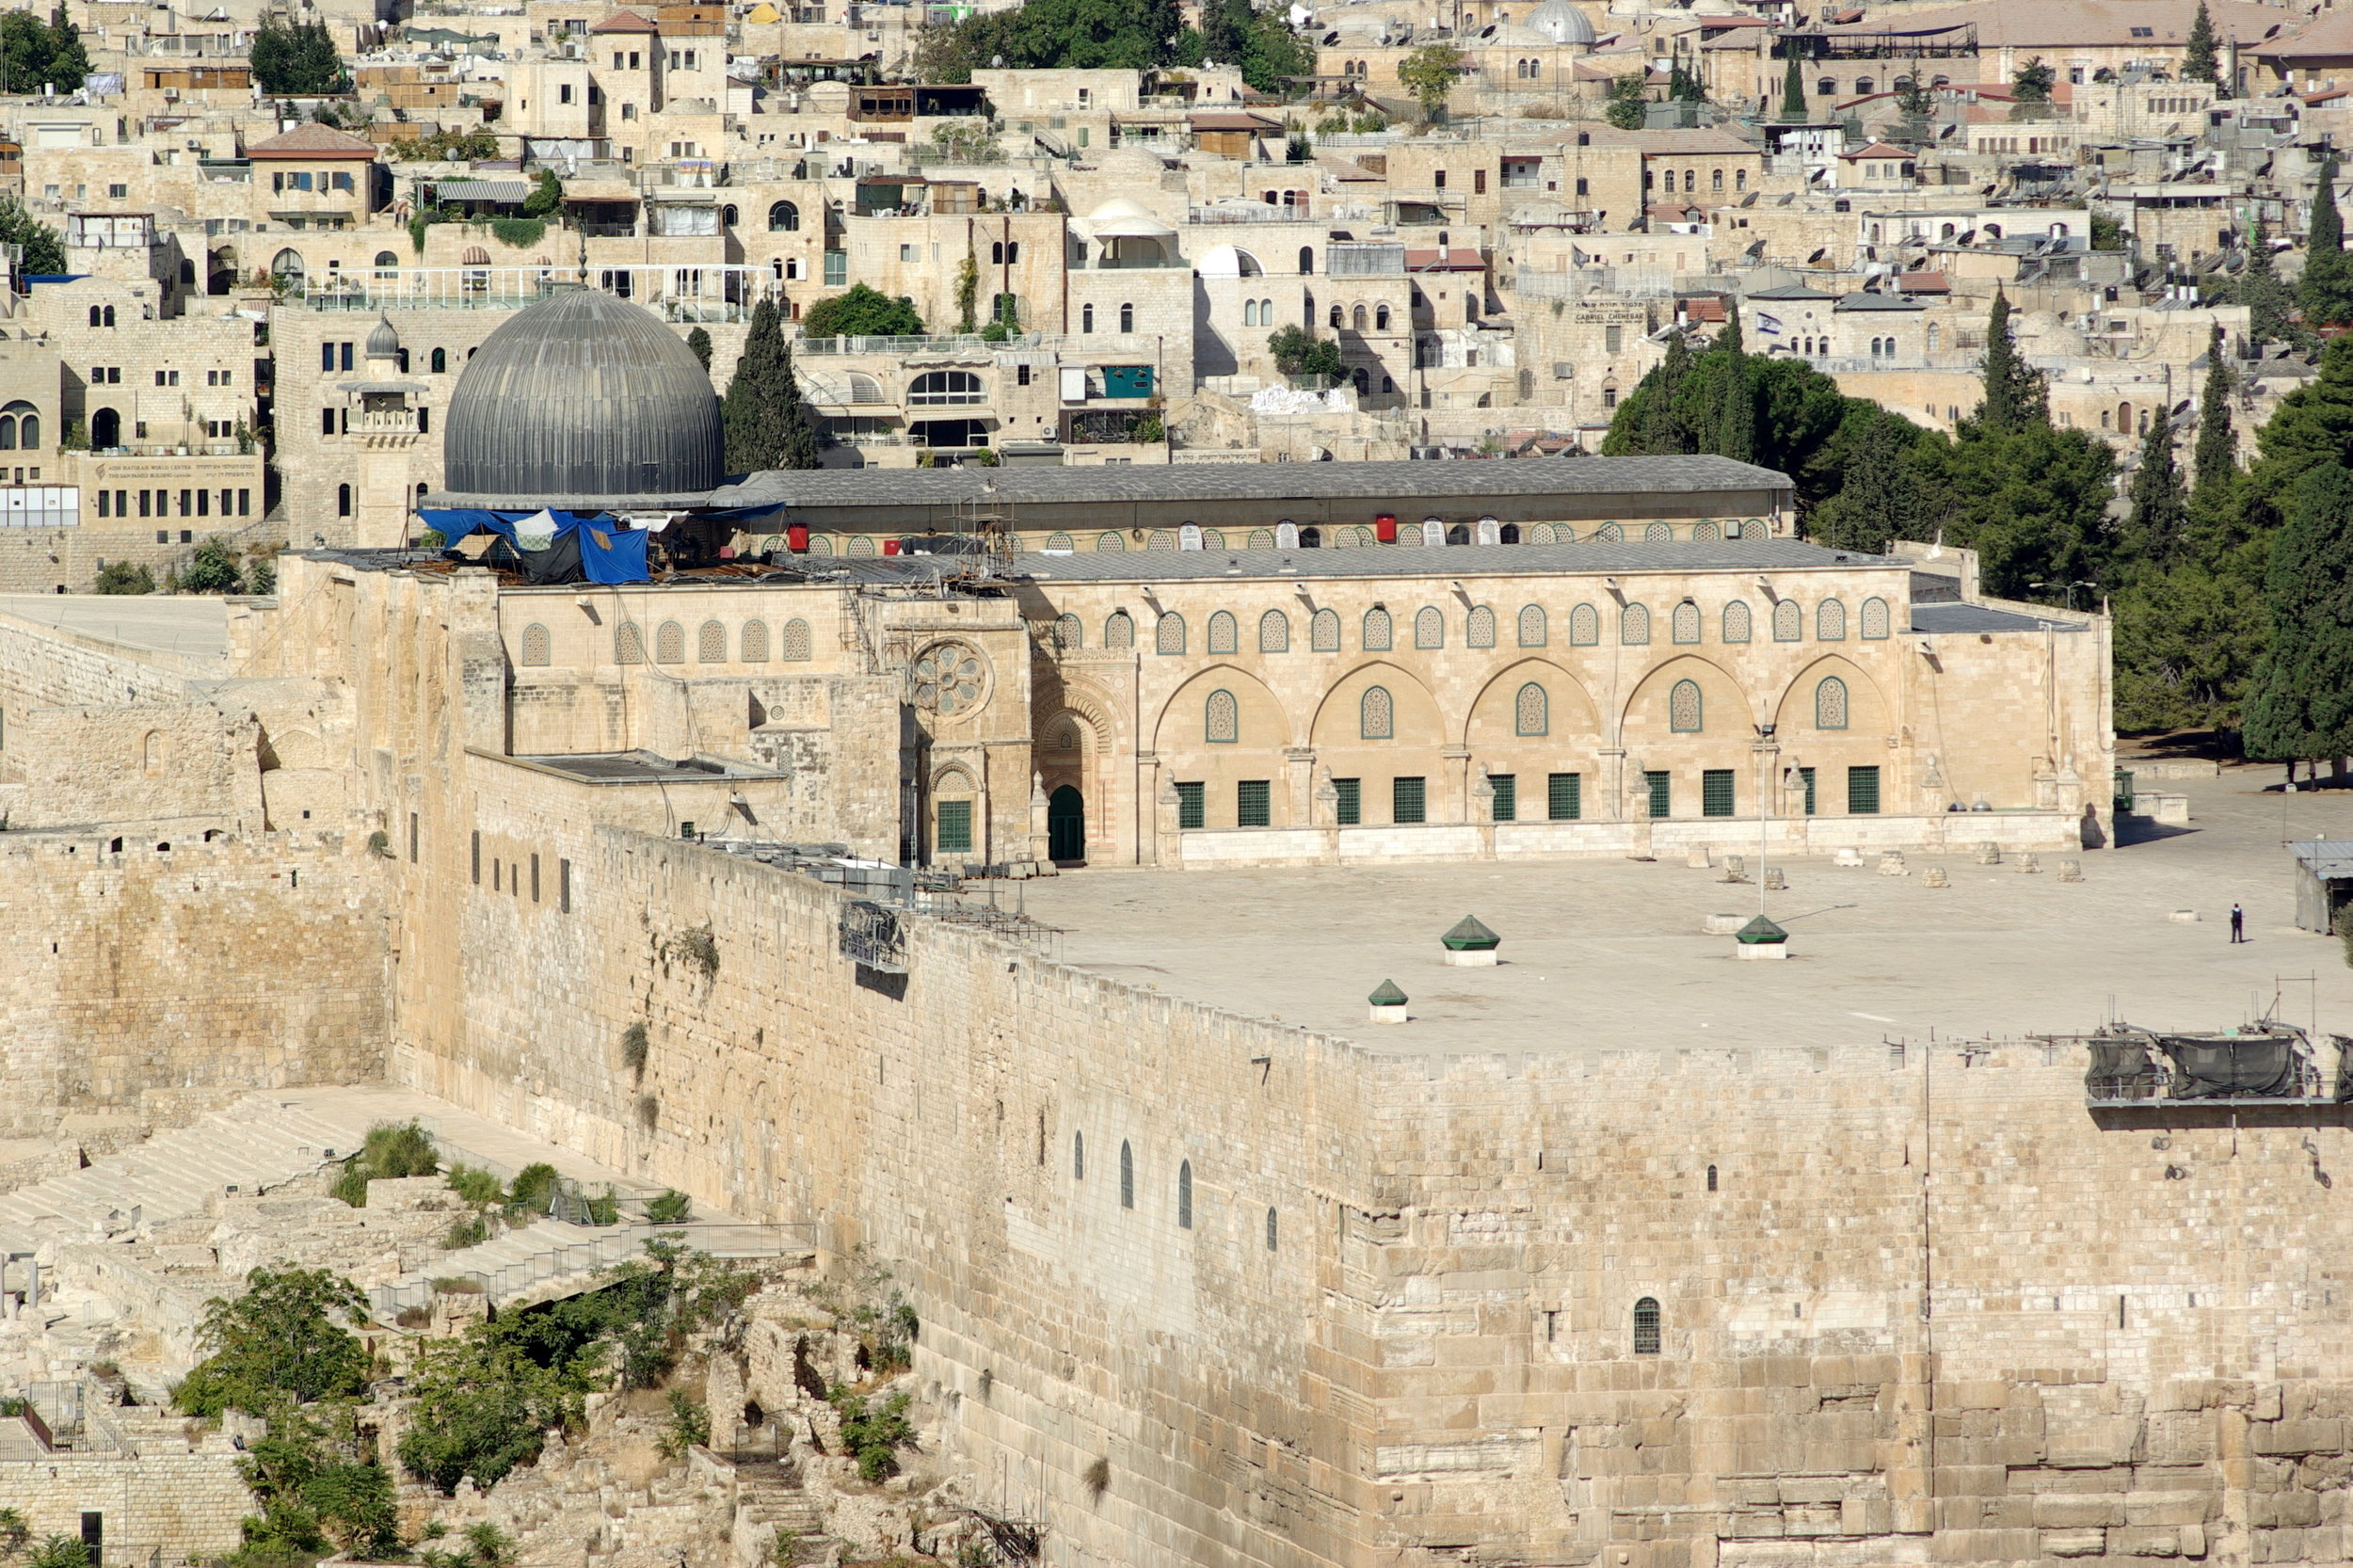 Al-Aqsa Mosque, located in Jerusalem's old city, is Islam's third holiest site. (Wikimedia Commons)